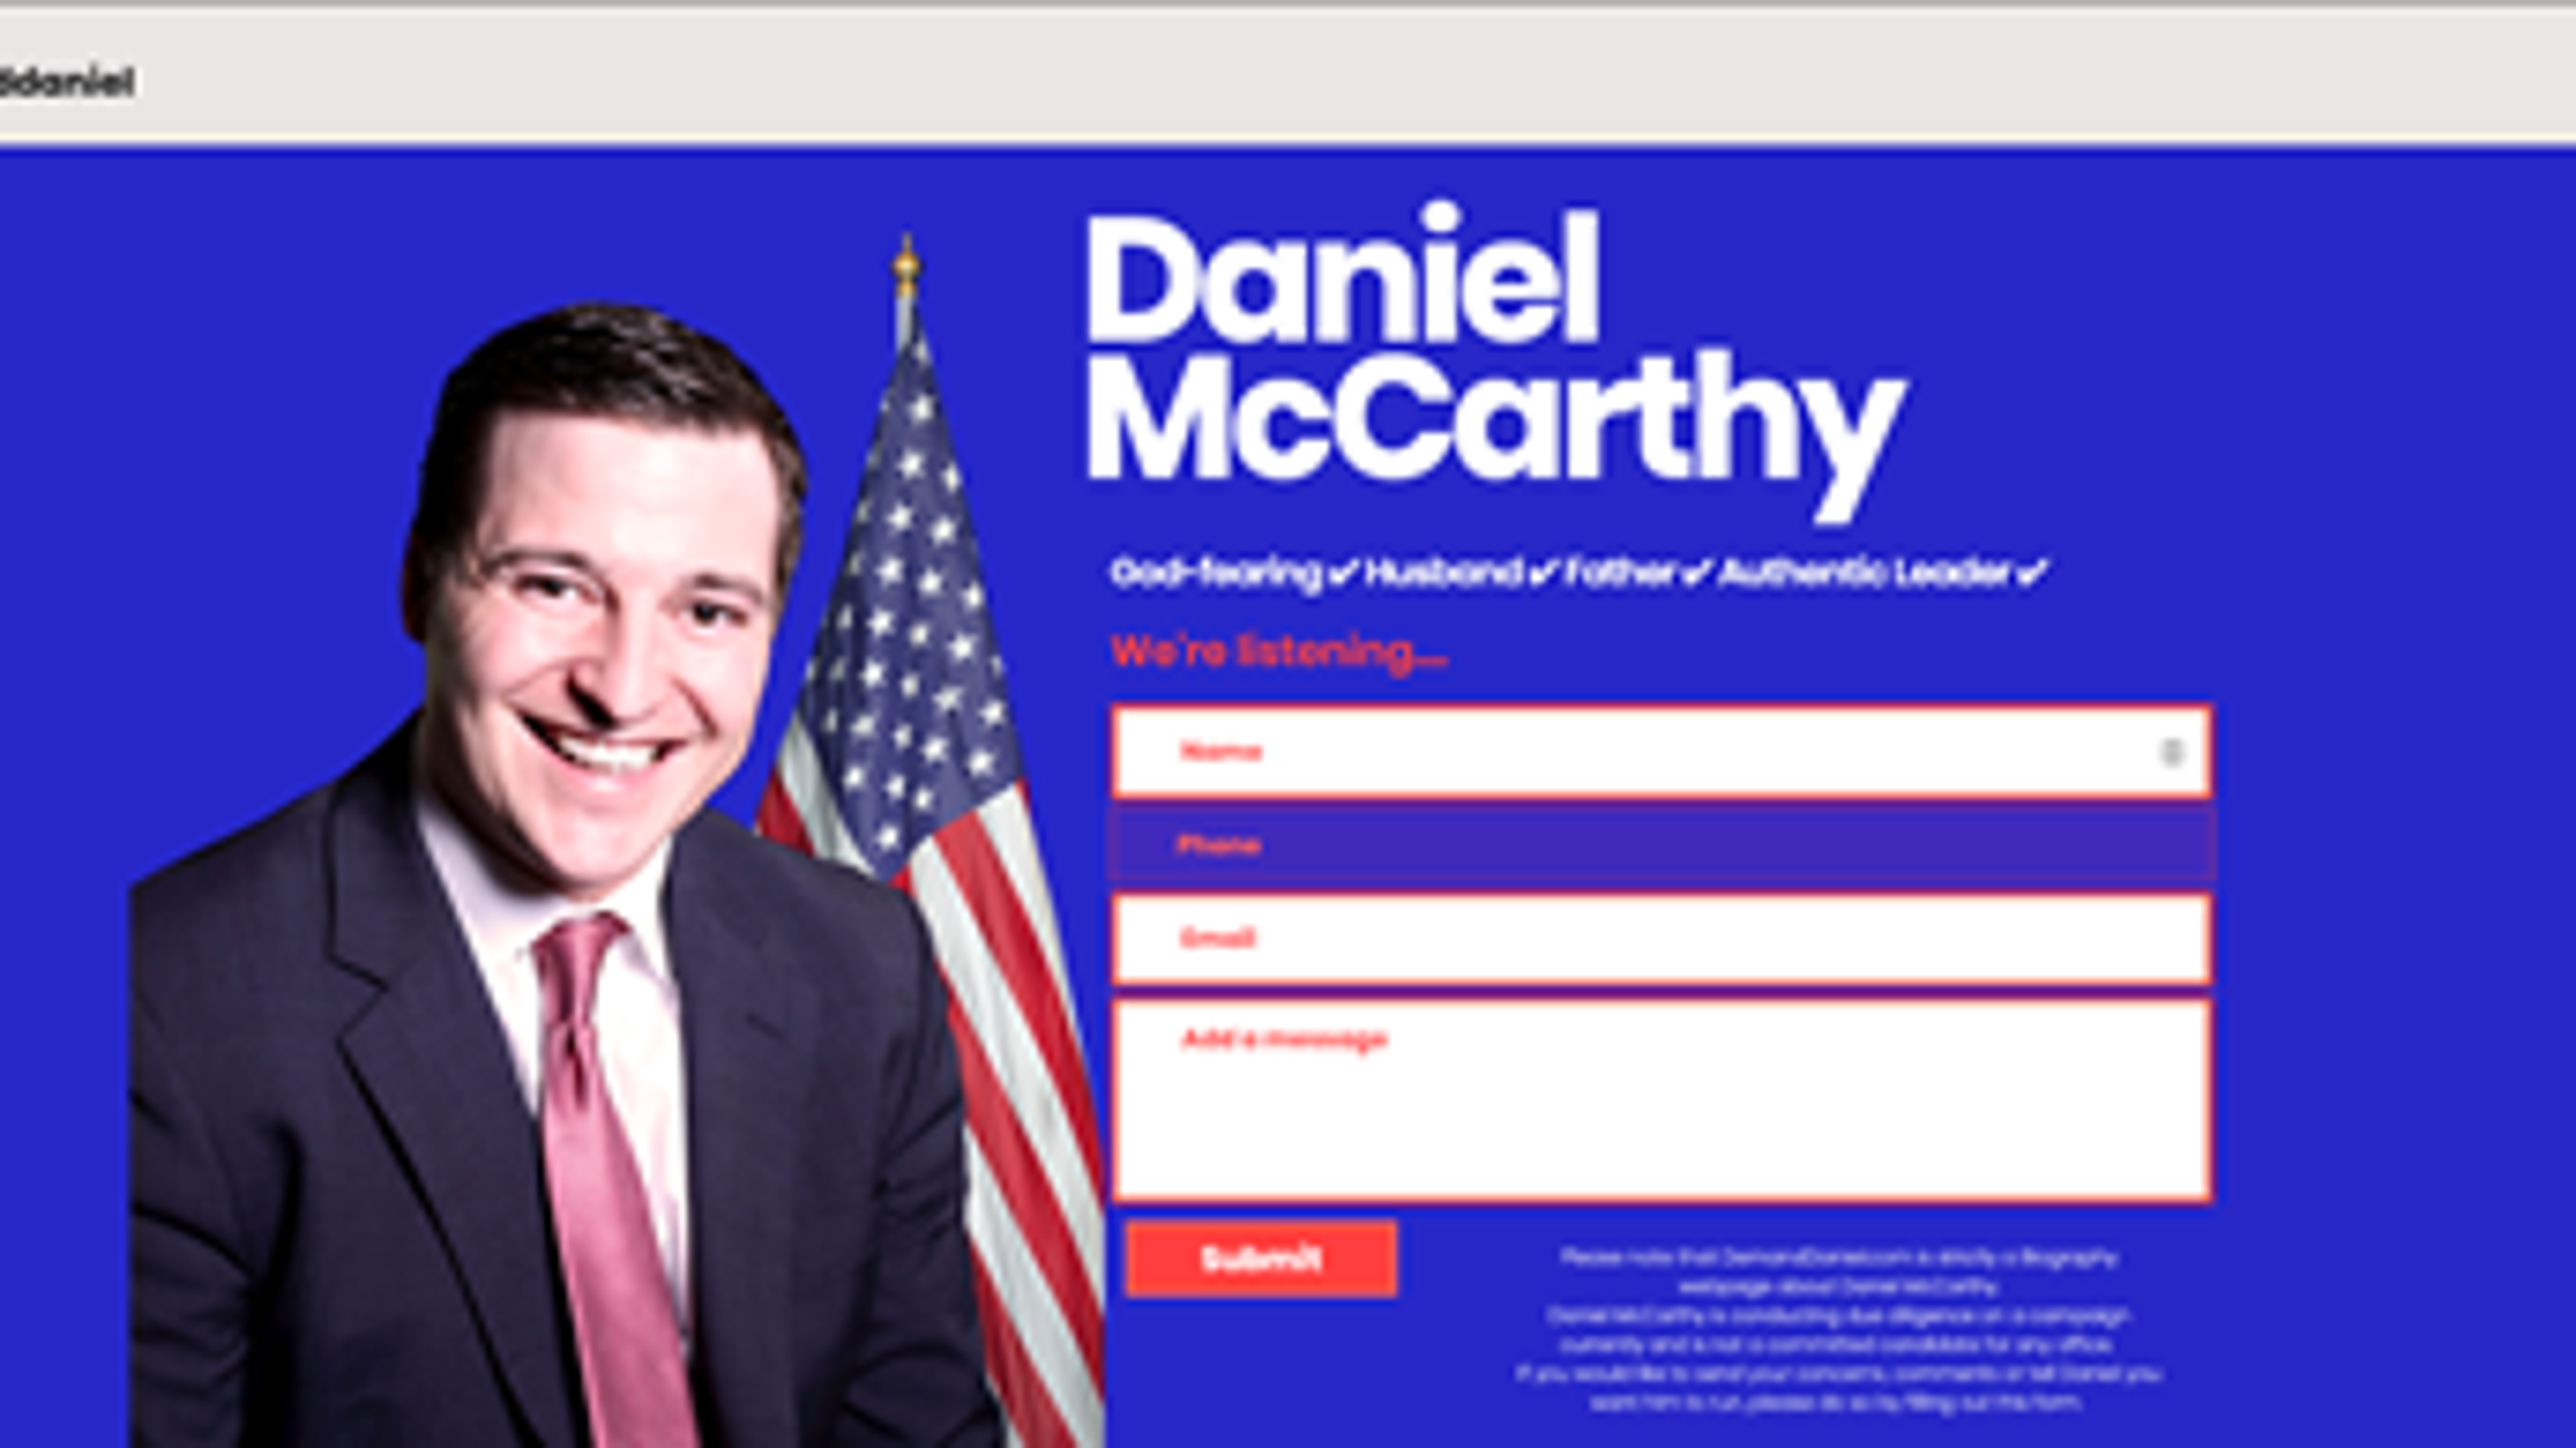 Forget Greenland — Arizona GOP challenger wants to annex Mexico. And (LOL) he's serious.